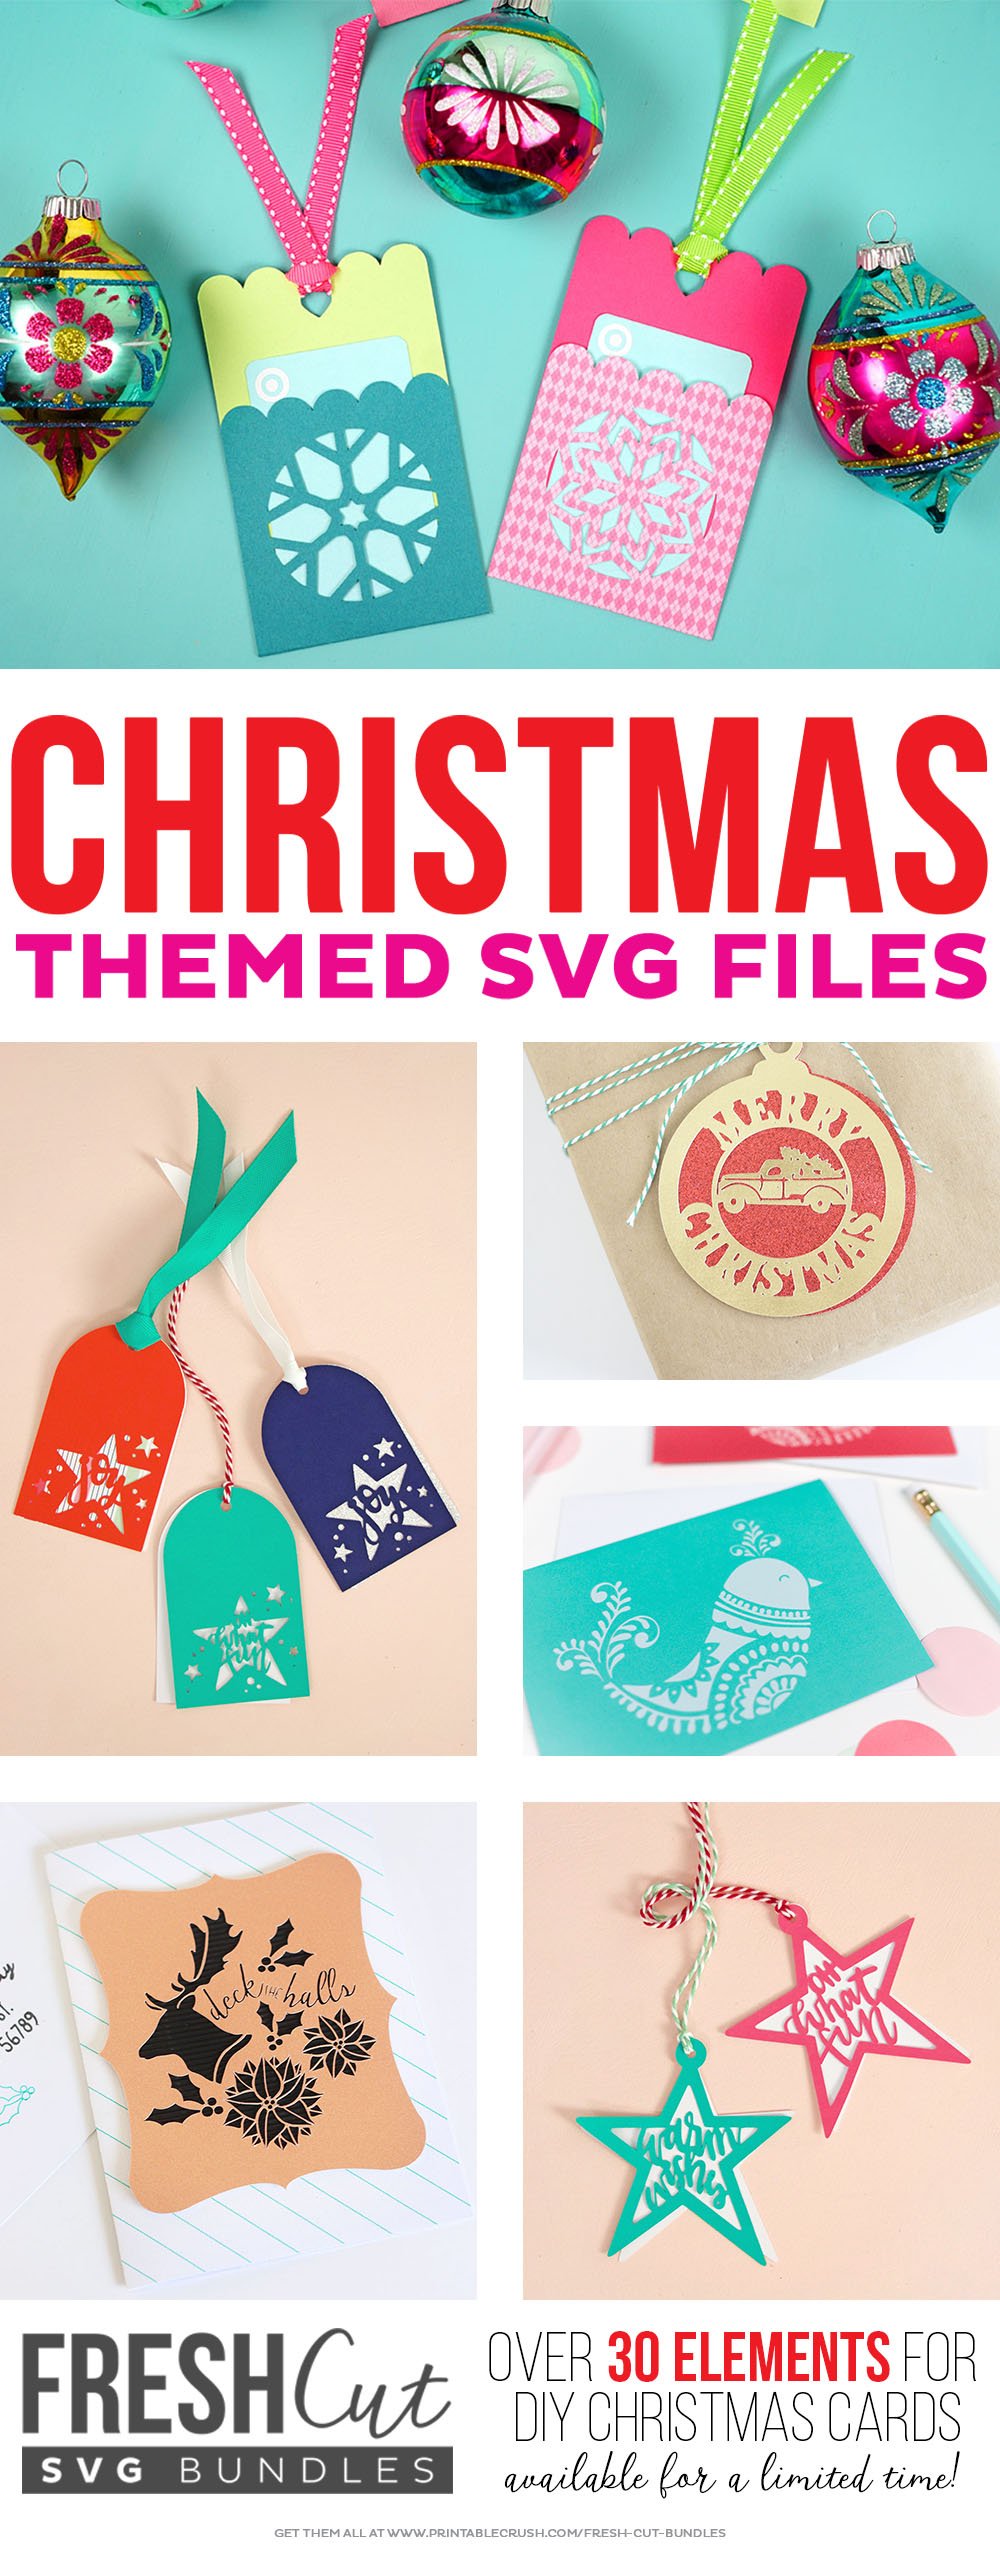 Christmas gift tags and cards svg cut files. Over 30 elements to create unique gift tags for your friends and family.